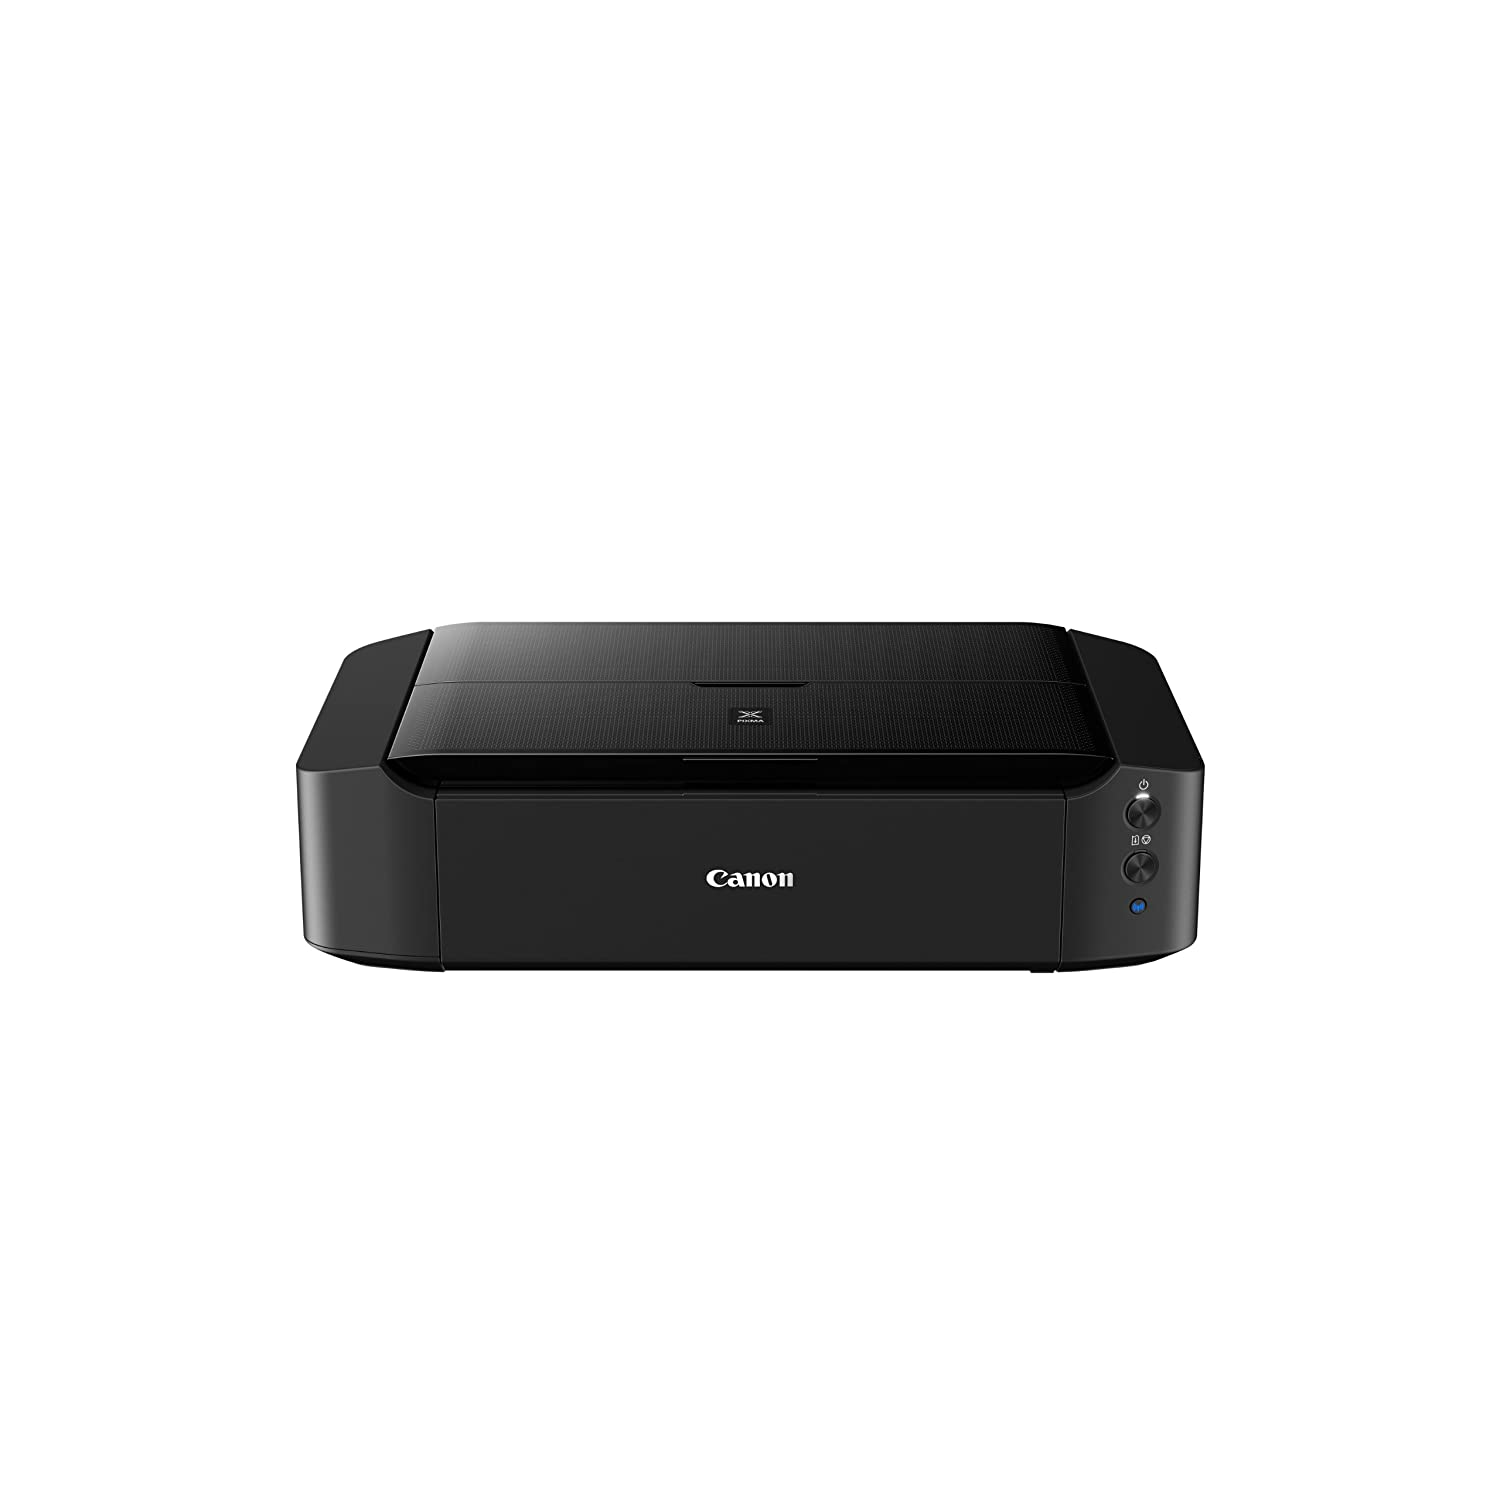 Ink and Laser Printers: Amazon.co.uk